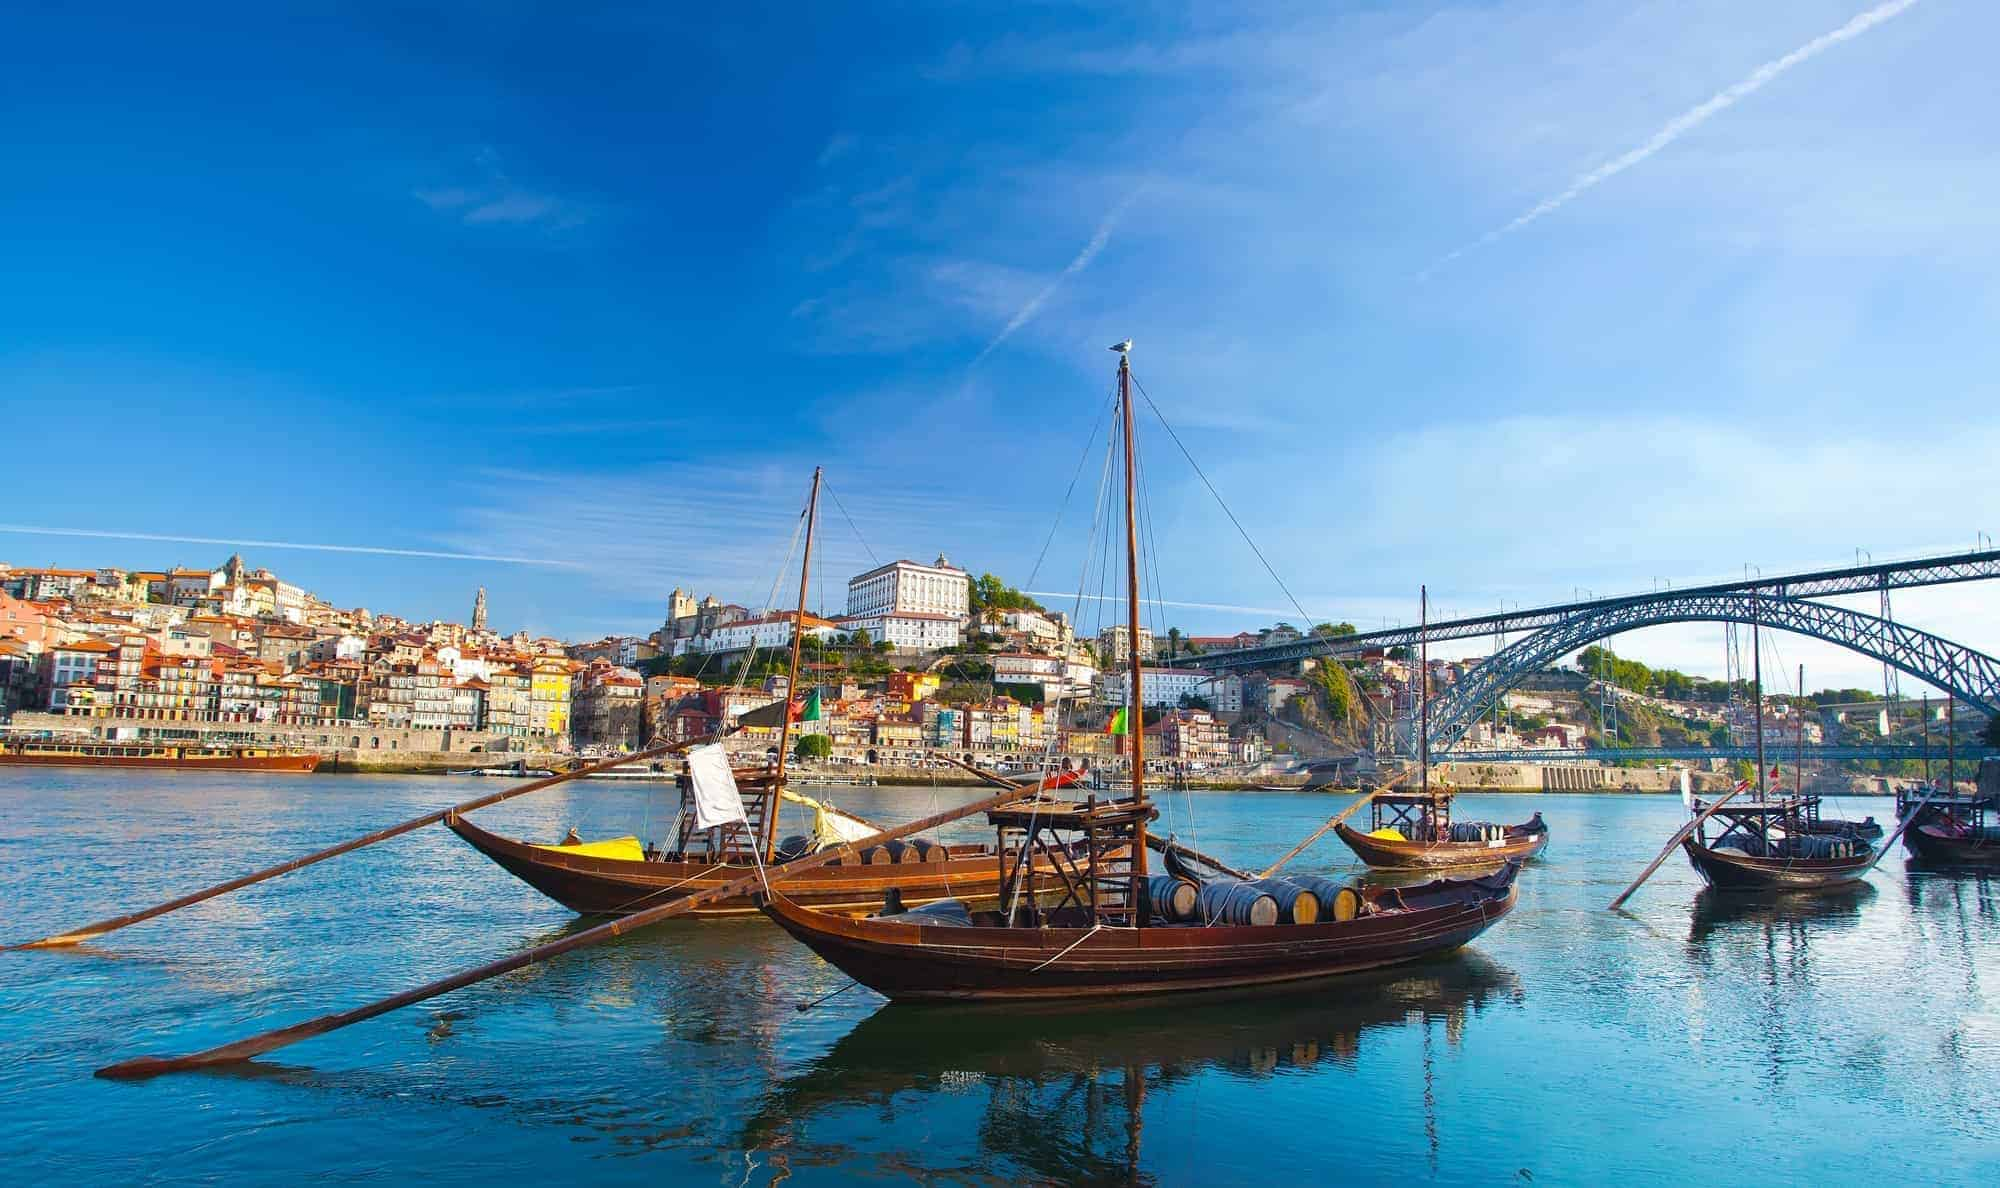 That is why it is called port wine, the old boats in Porto that transported the wines from and to the port